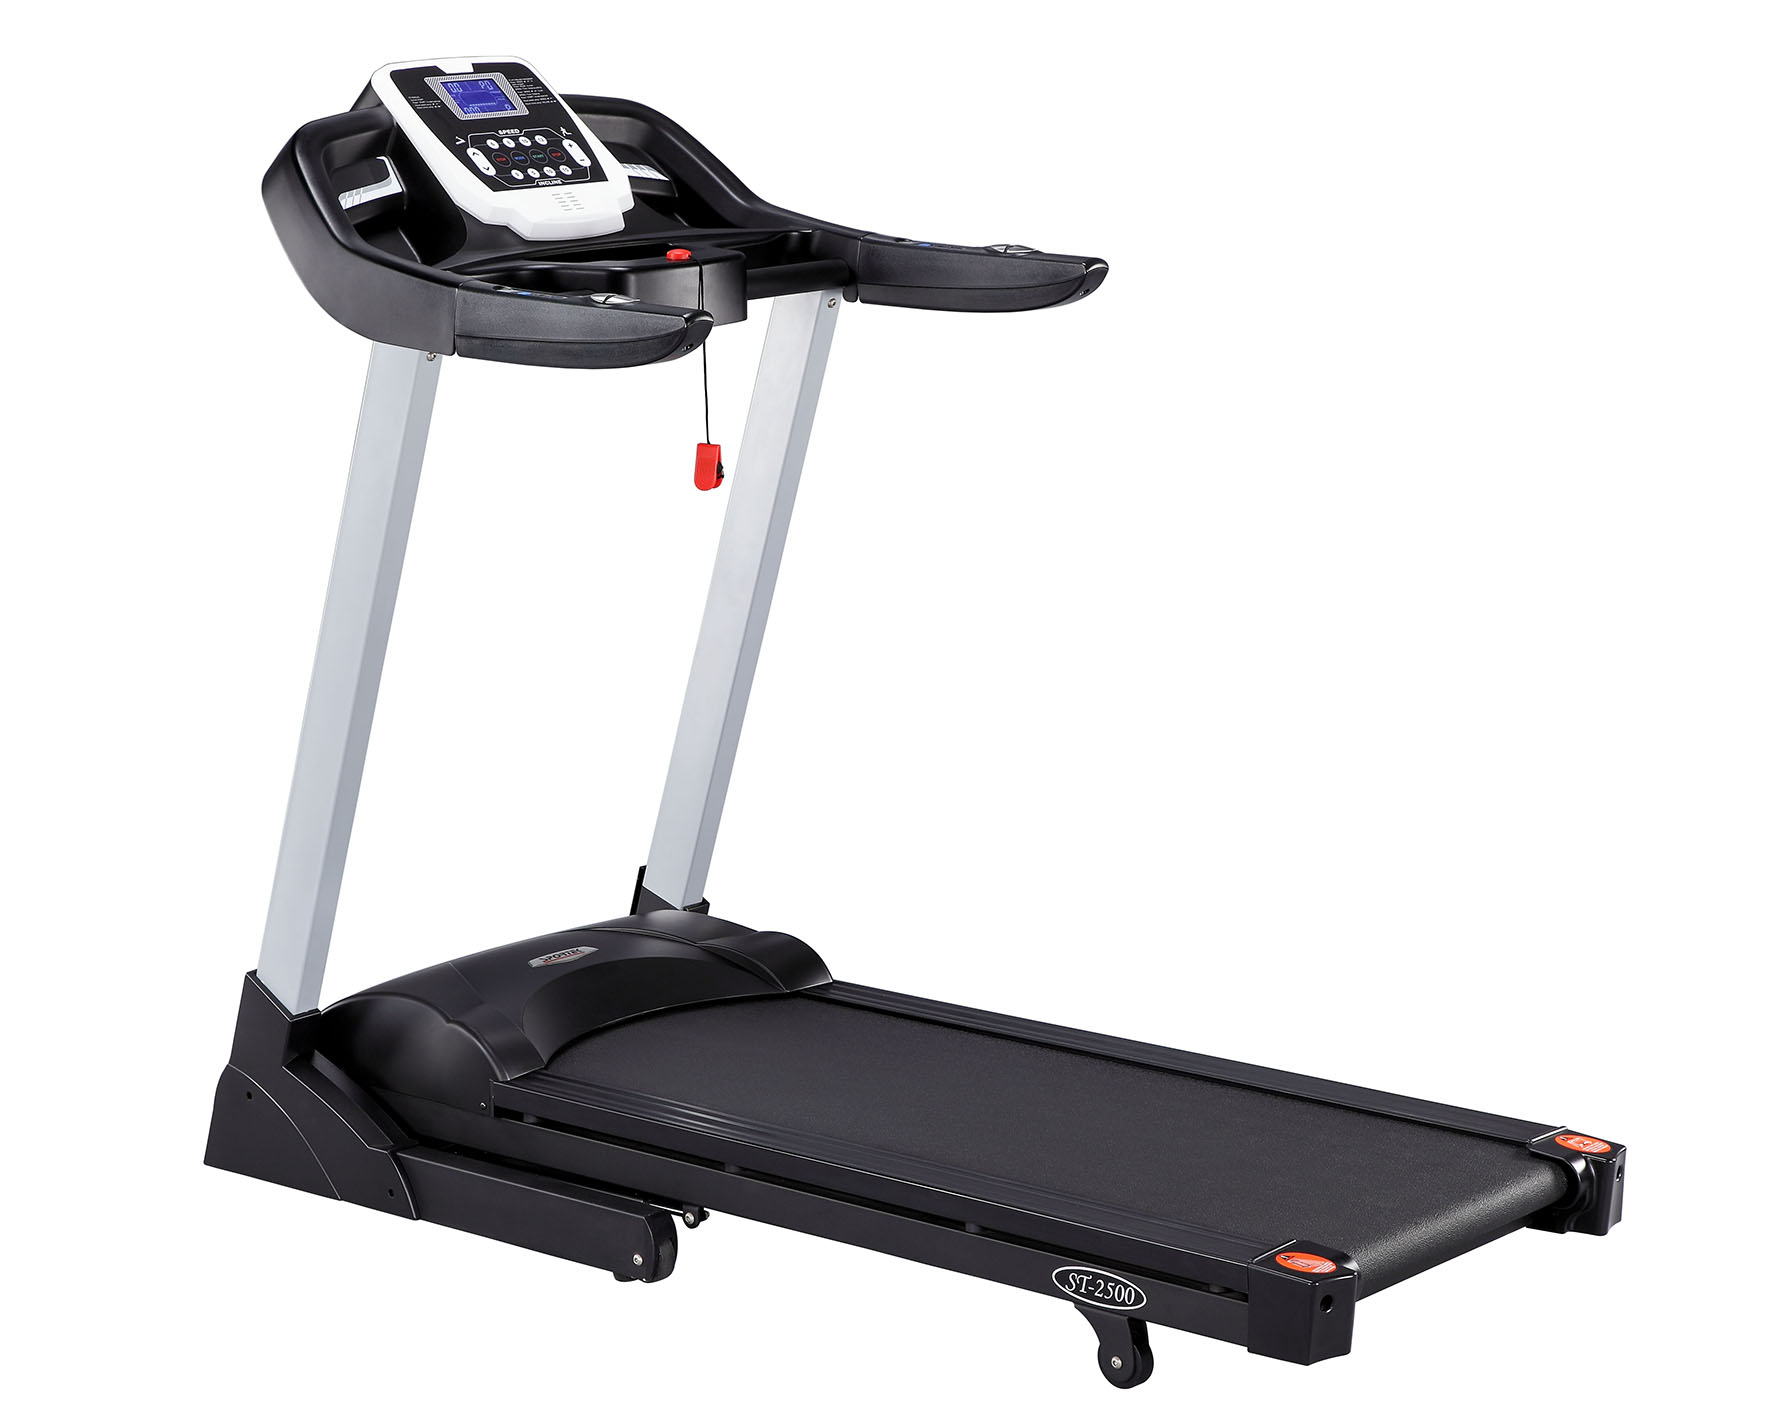 Sportek Treadmills Have Warranties For Use In High Traffic You Don T Want To Run In Difficult Weather Conditions Or Waste Time Driving To The Gym Buying A Best Treadmill For Home Use Is Is established in 2002 in taichung, taiwan. sportek treadmills have warranties for